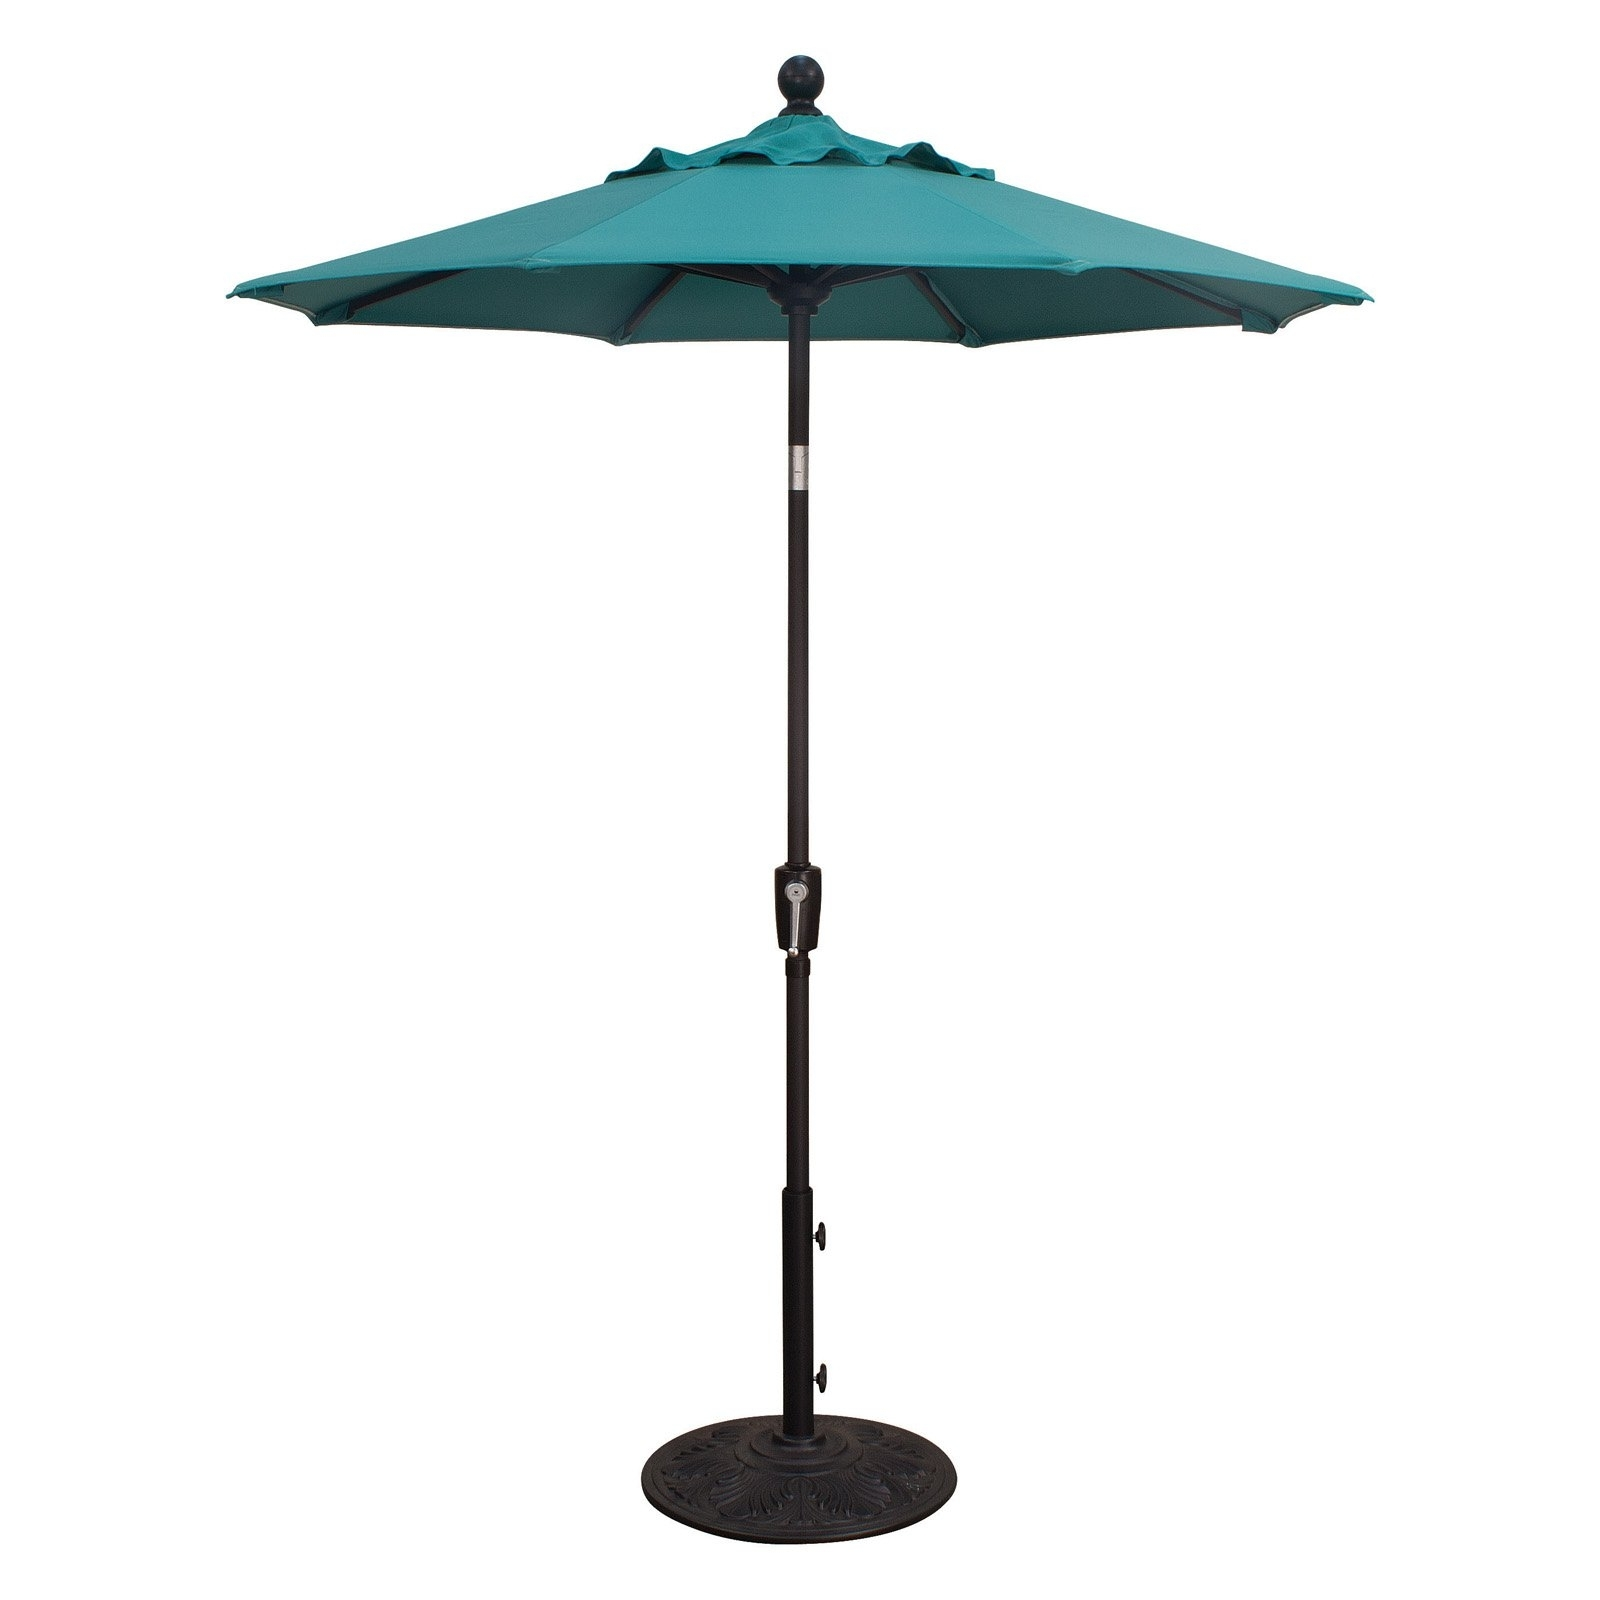 Latest Treasure Garden 6 Ft. Sunbrella Aluminum Push Button Tilt Patio Within Sunbrella Patio Umbrellas (Gallery 16 of 20)